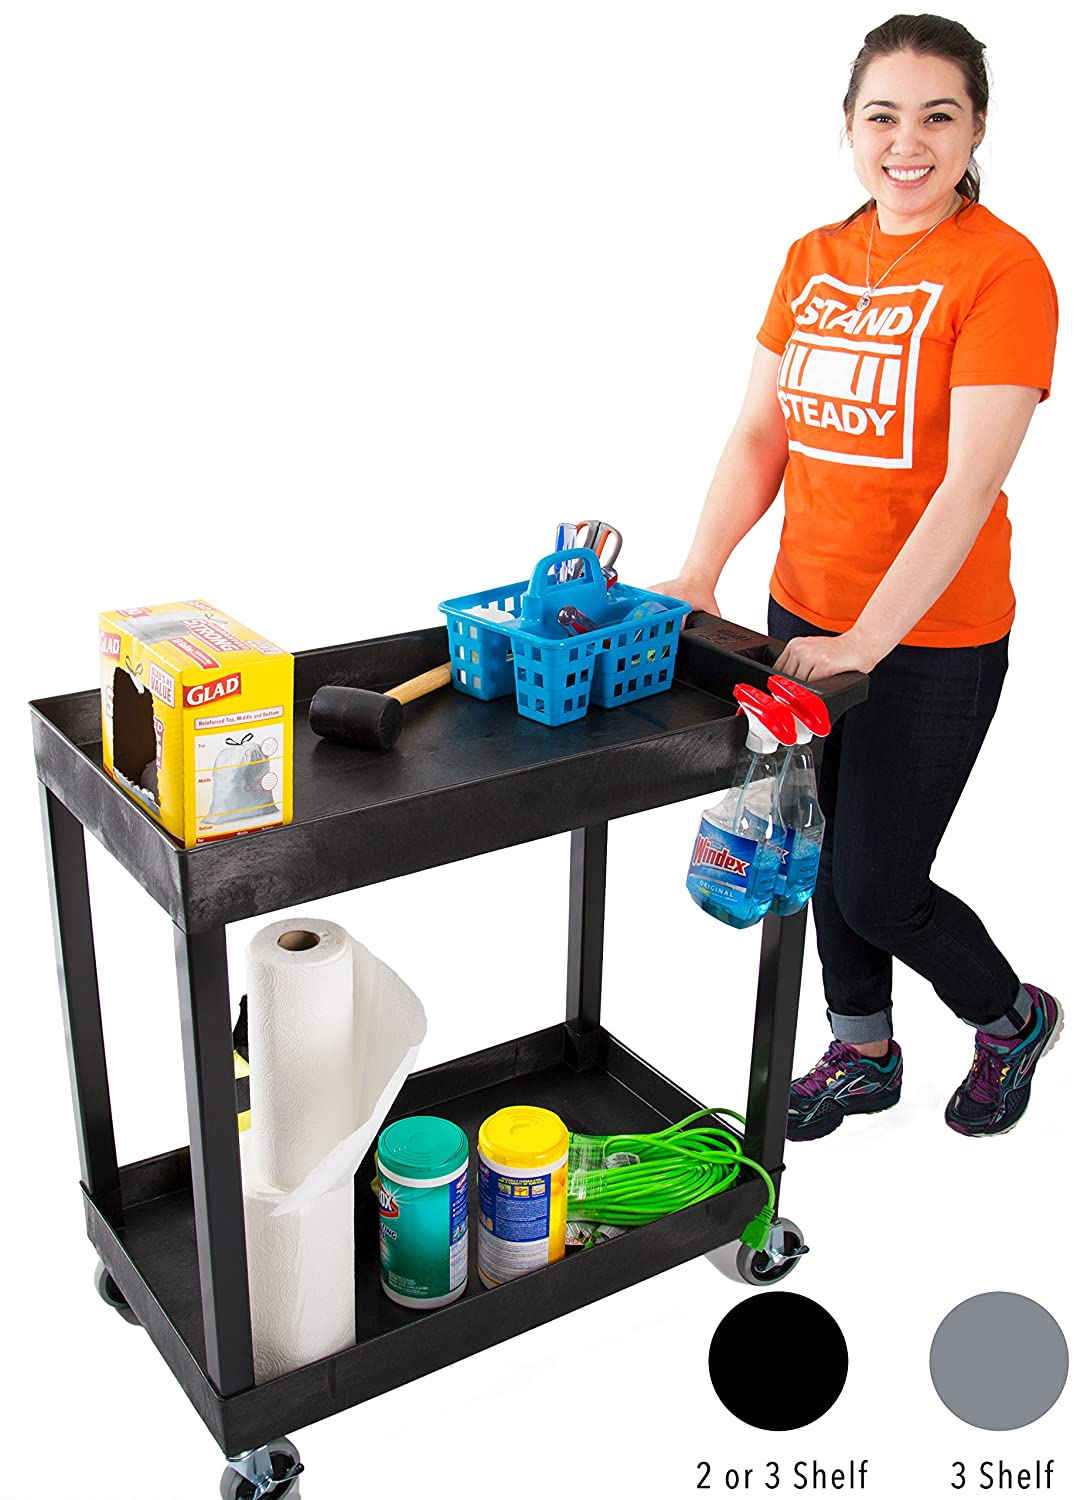 Original Tubstr 2 Shelf Utility Cart/Service Cart - Heavy Duty - Supports up to 400 lbs - Tub Carts w/Deep Shelves - Great for Warehouse, Garage, Cleaning andMore! (3 Shelf - 32x18 / Black)